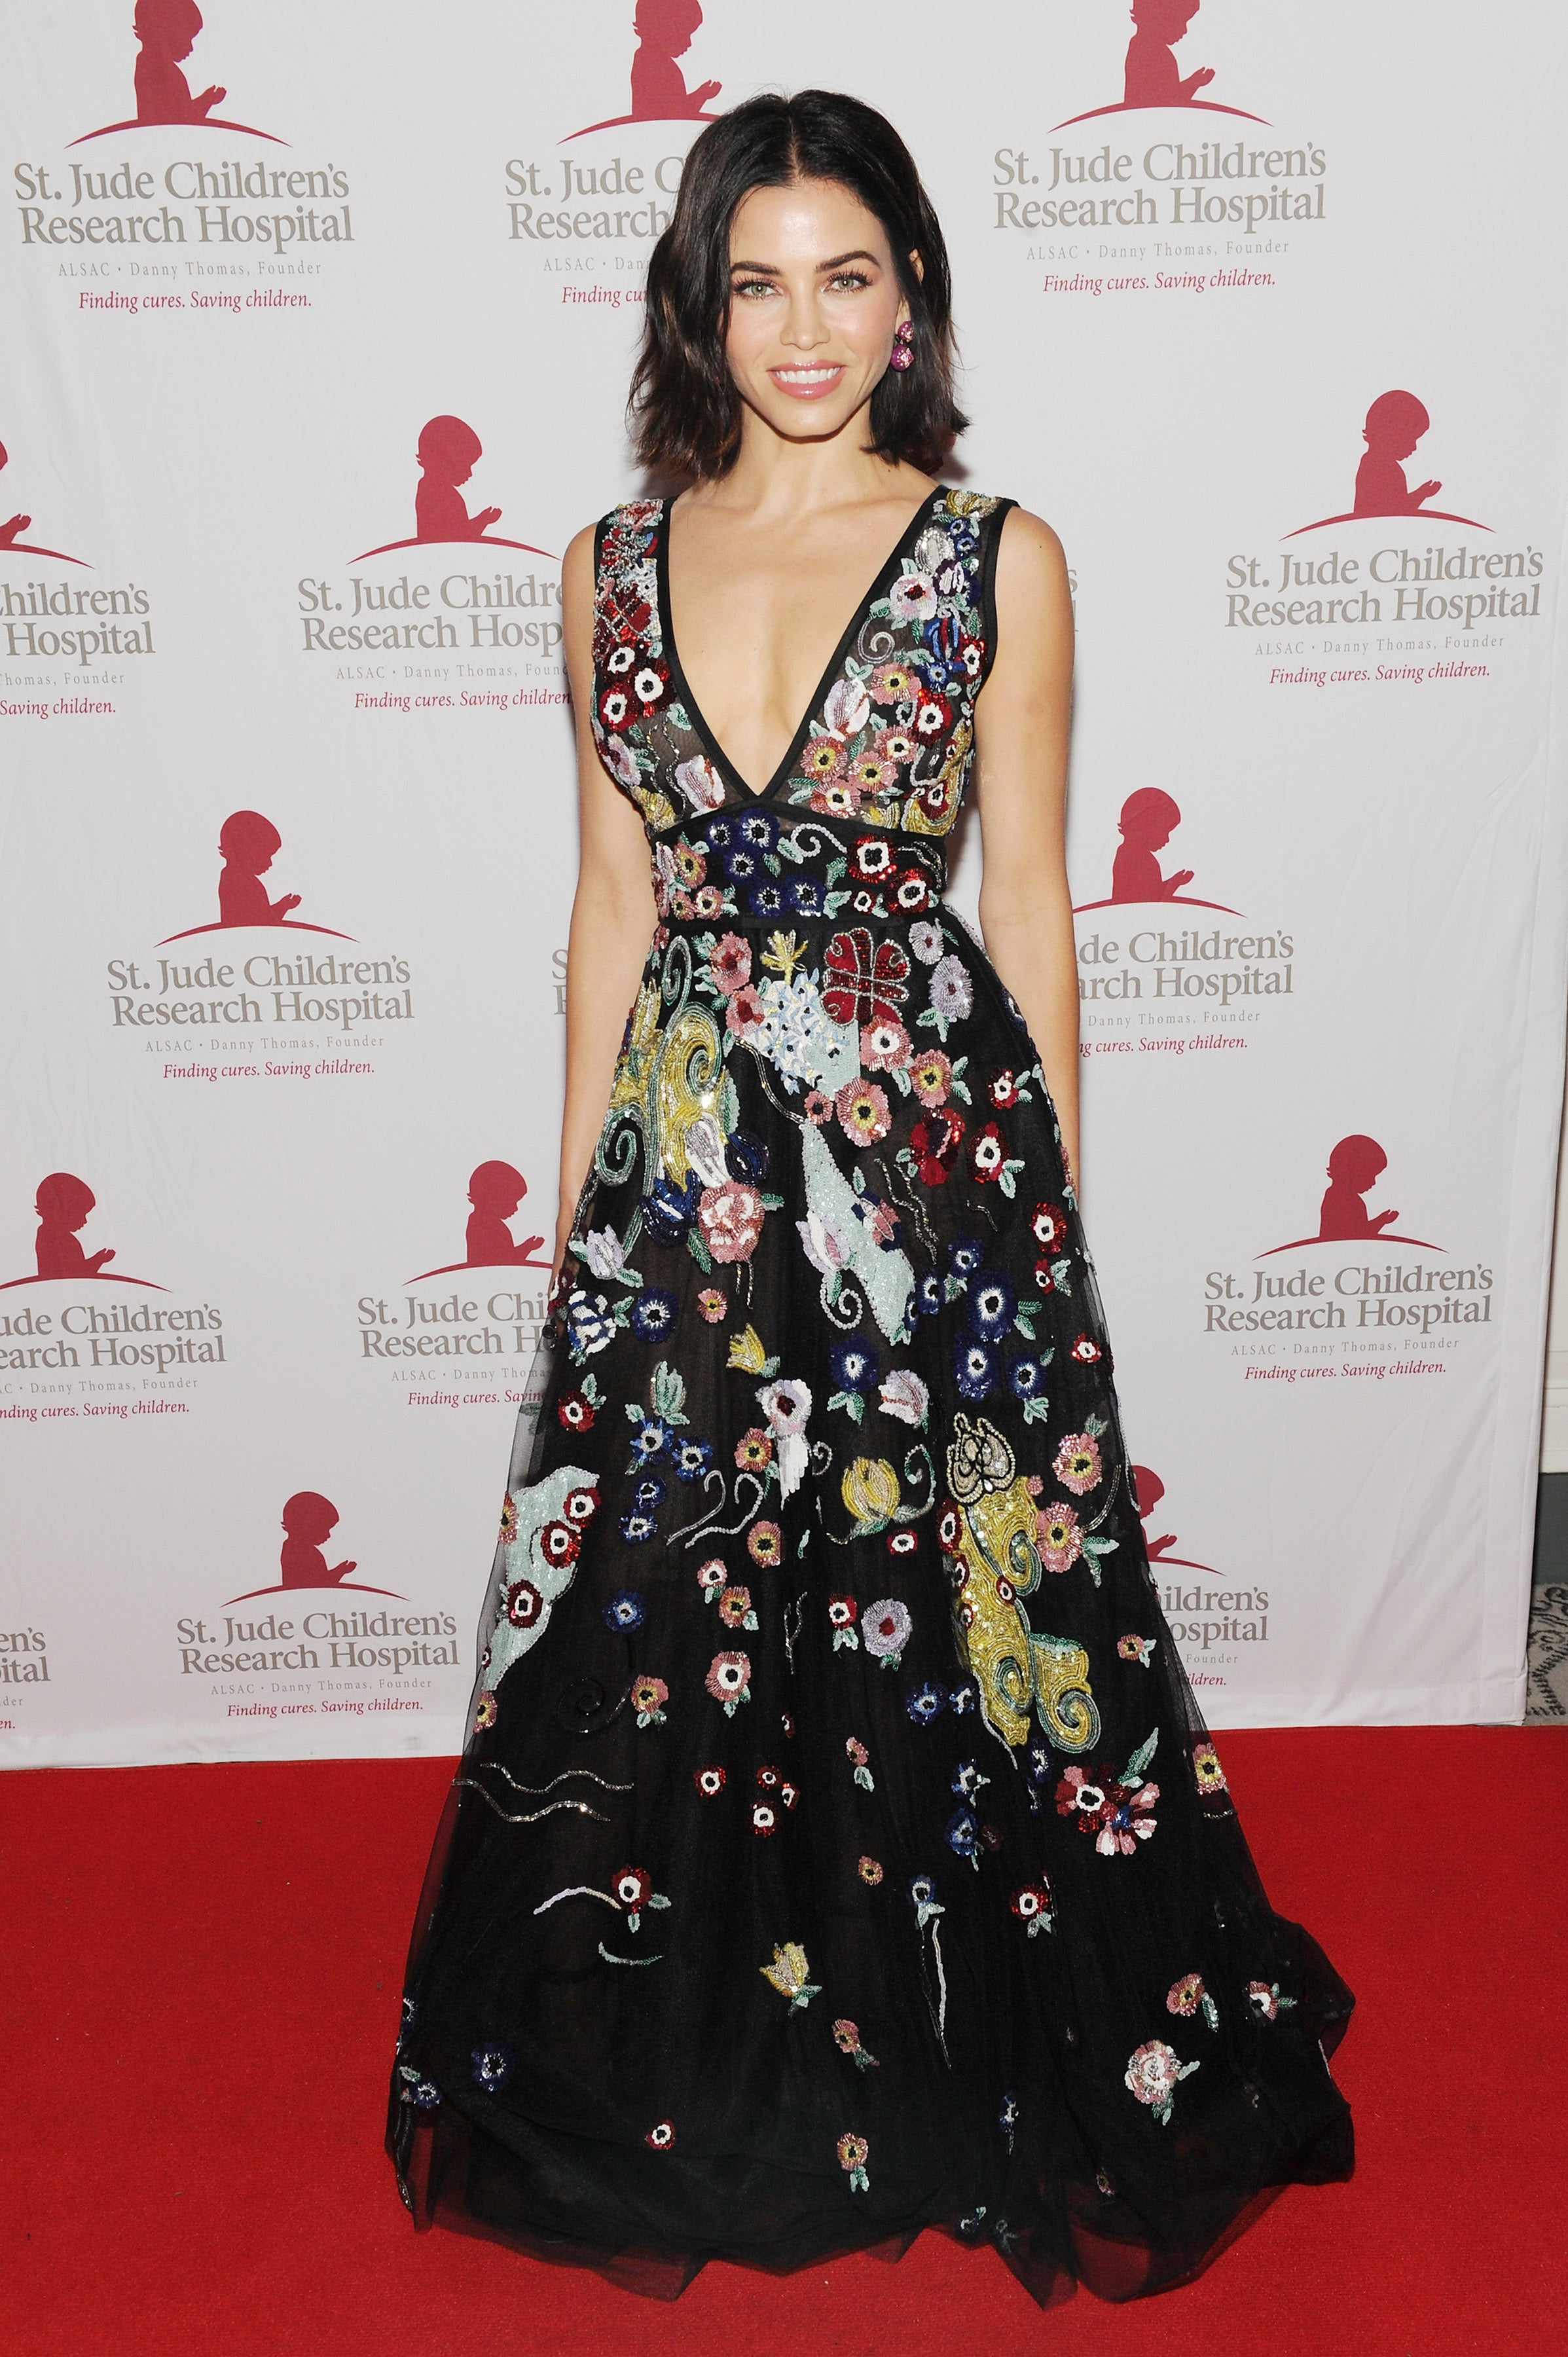 St Jude Heritage >> Jenna Dewan Honored At St Jude S Gala In First Public Appearance